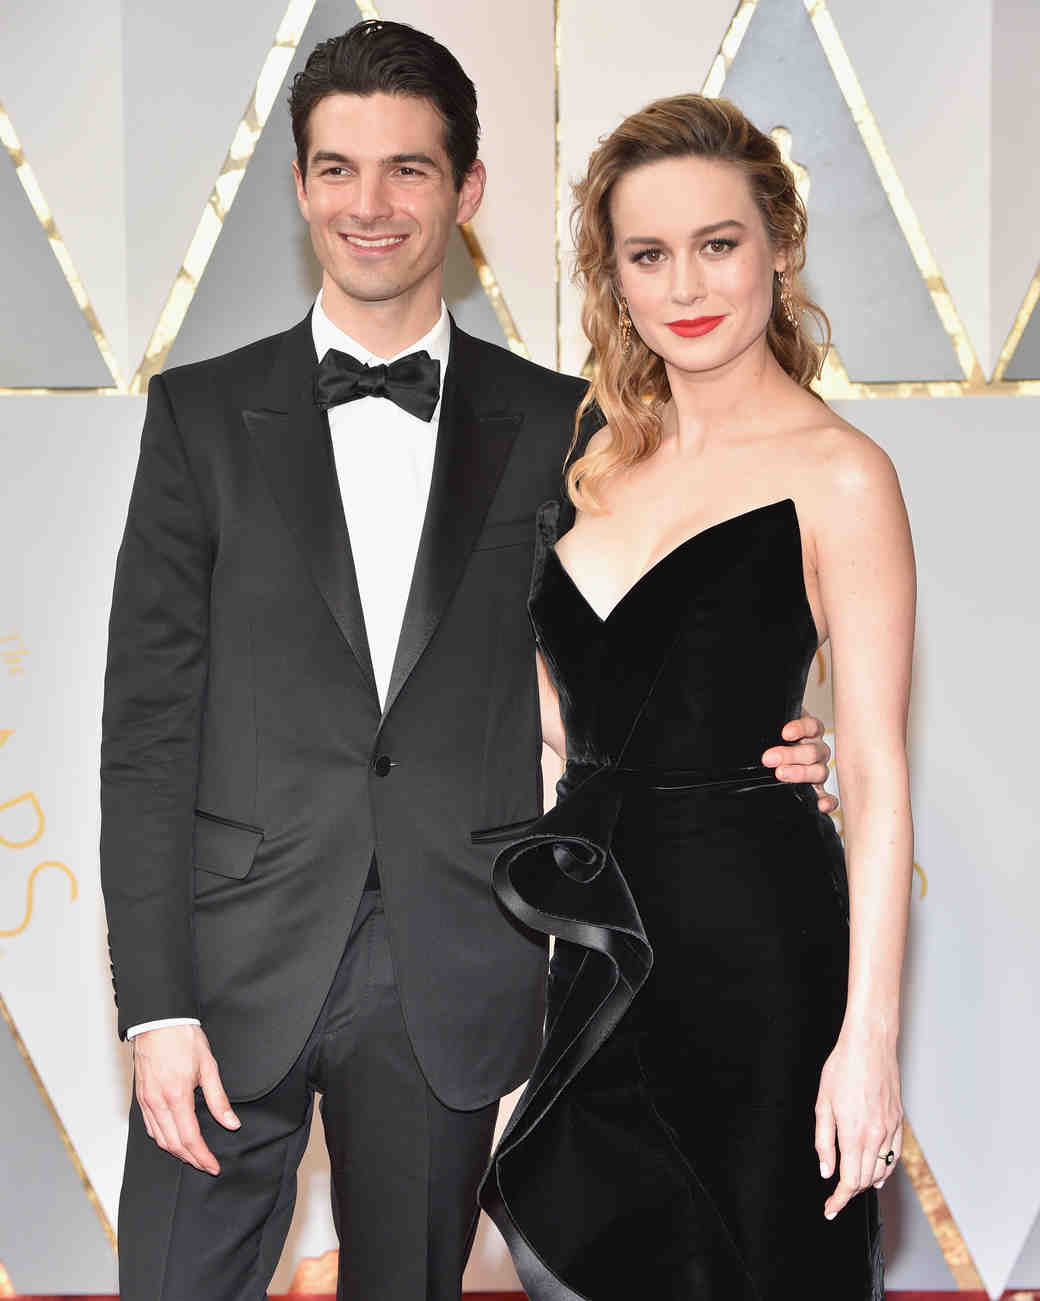 Brie Larson and Alex Greenwald at 2017 Academy Awards